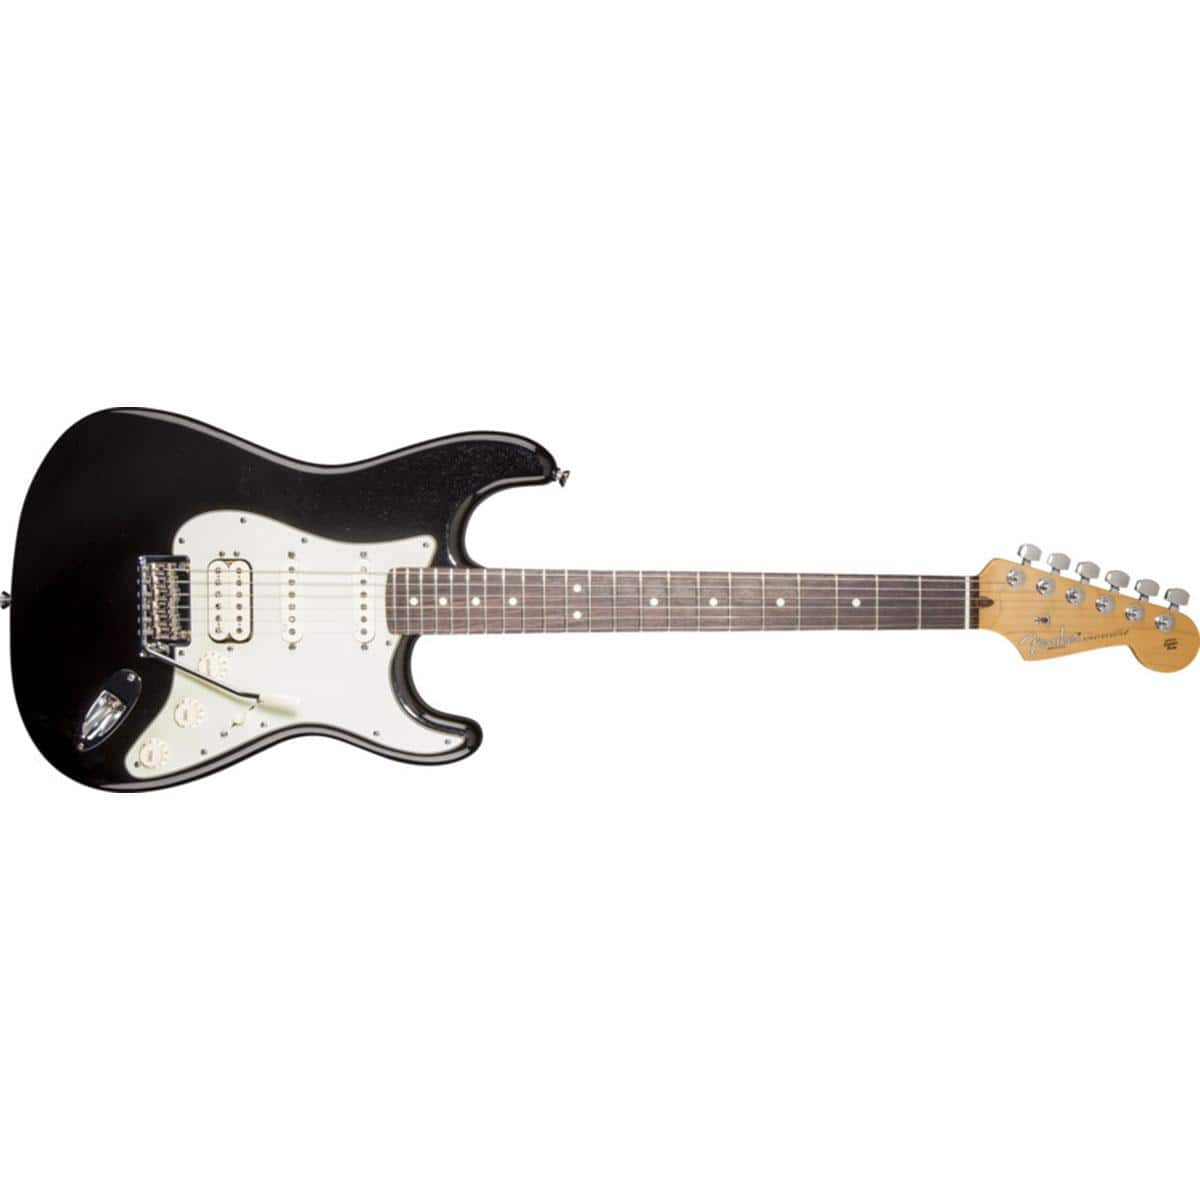 Fender American Deluxe Stratocaster Plus HSS Electric Guitar $799 + free shipping